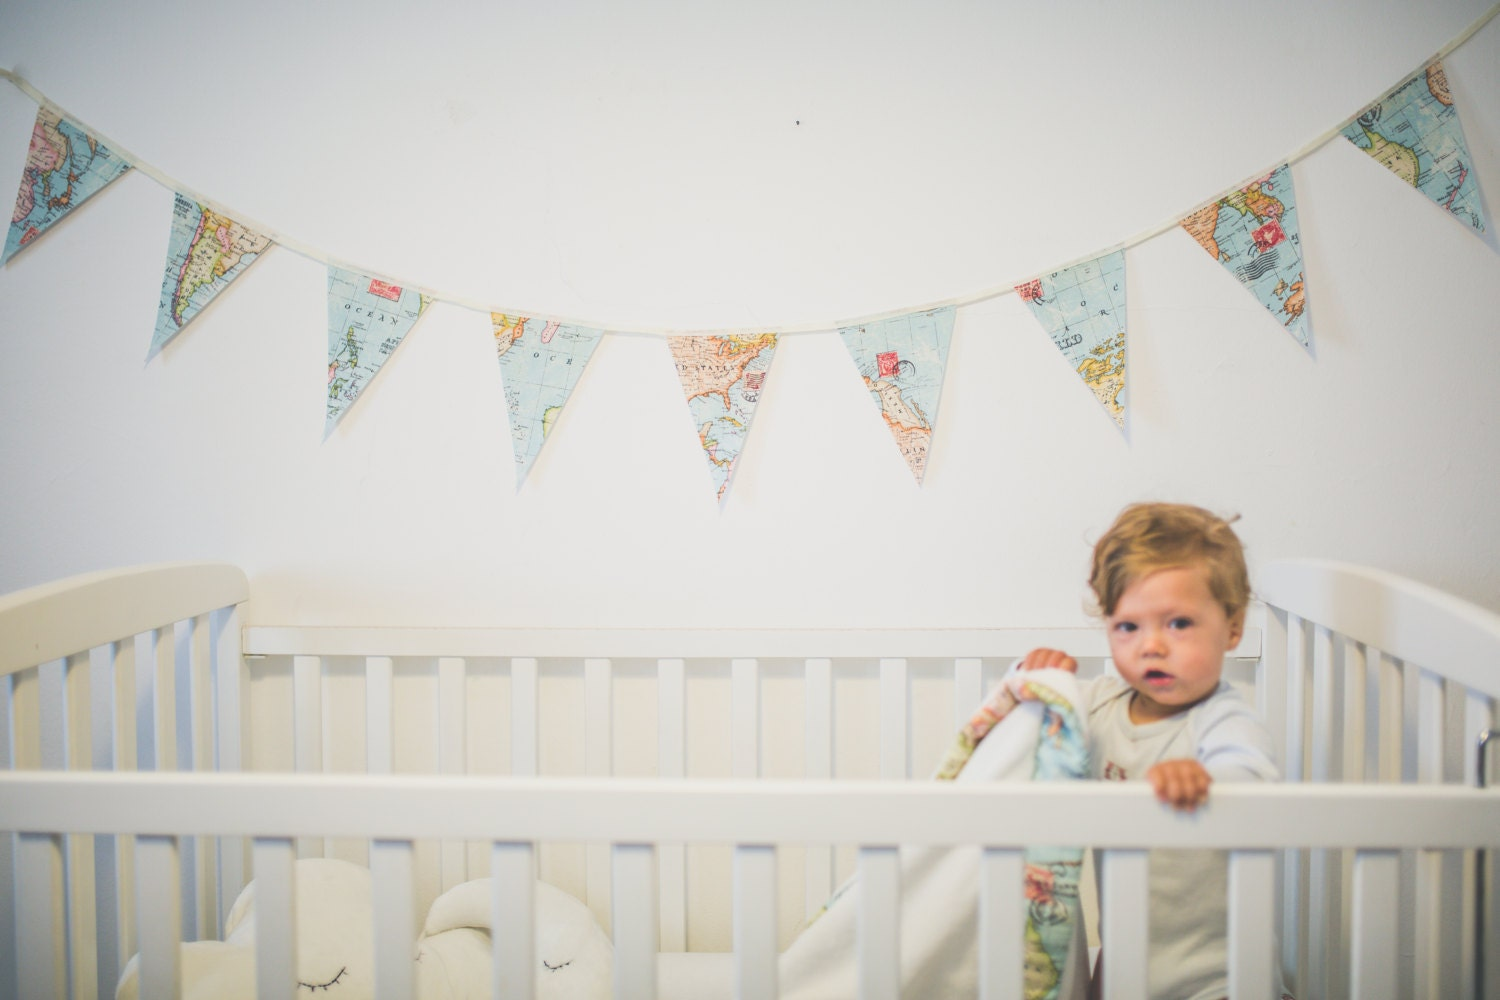 Baby bunting banner world map bunting world map decor wedding baby bunting banner world map bunting world map decor wedding garland fabric gumiabroncs Image collections